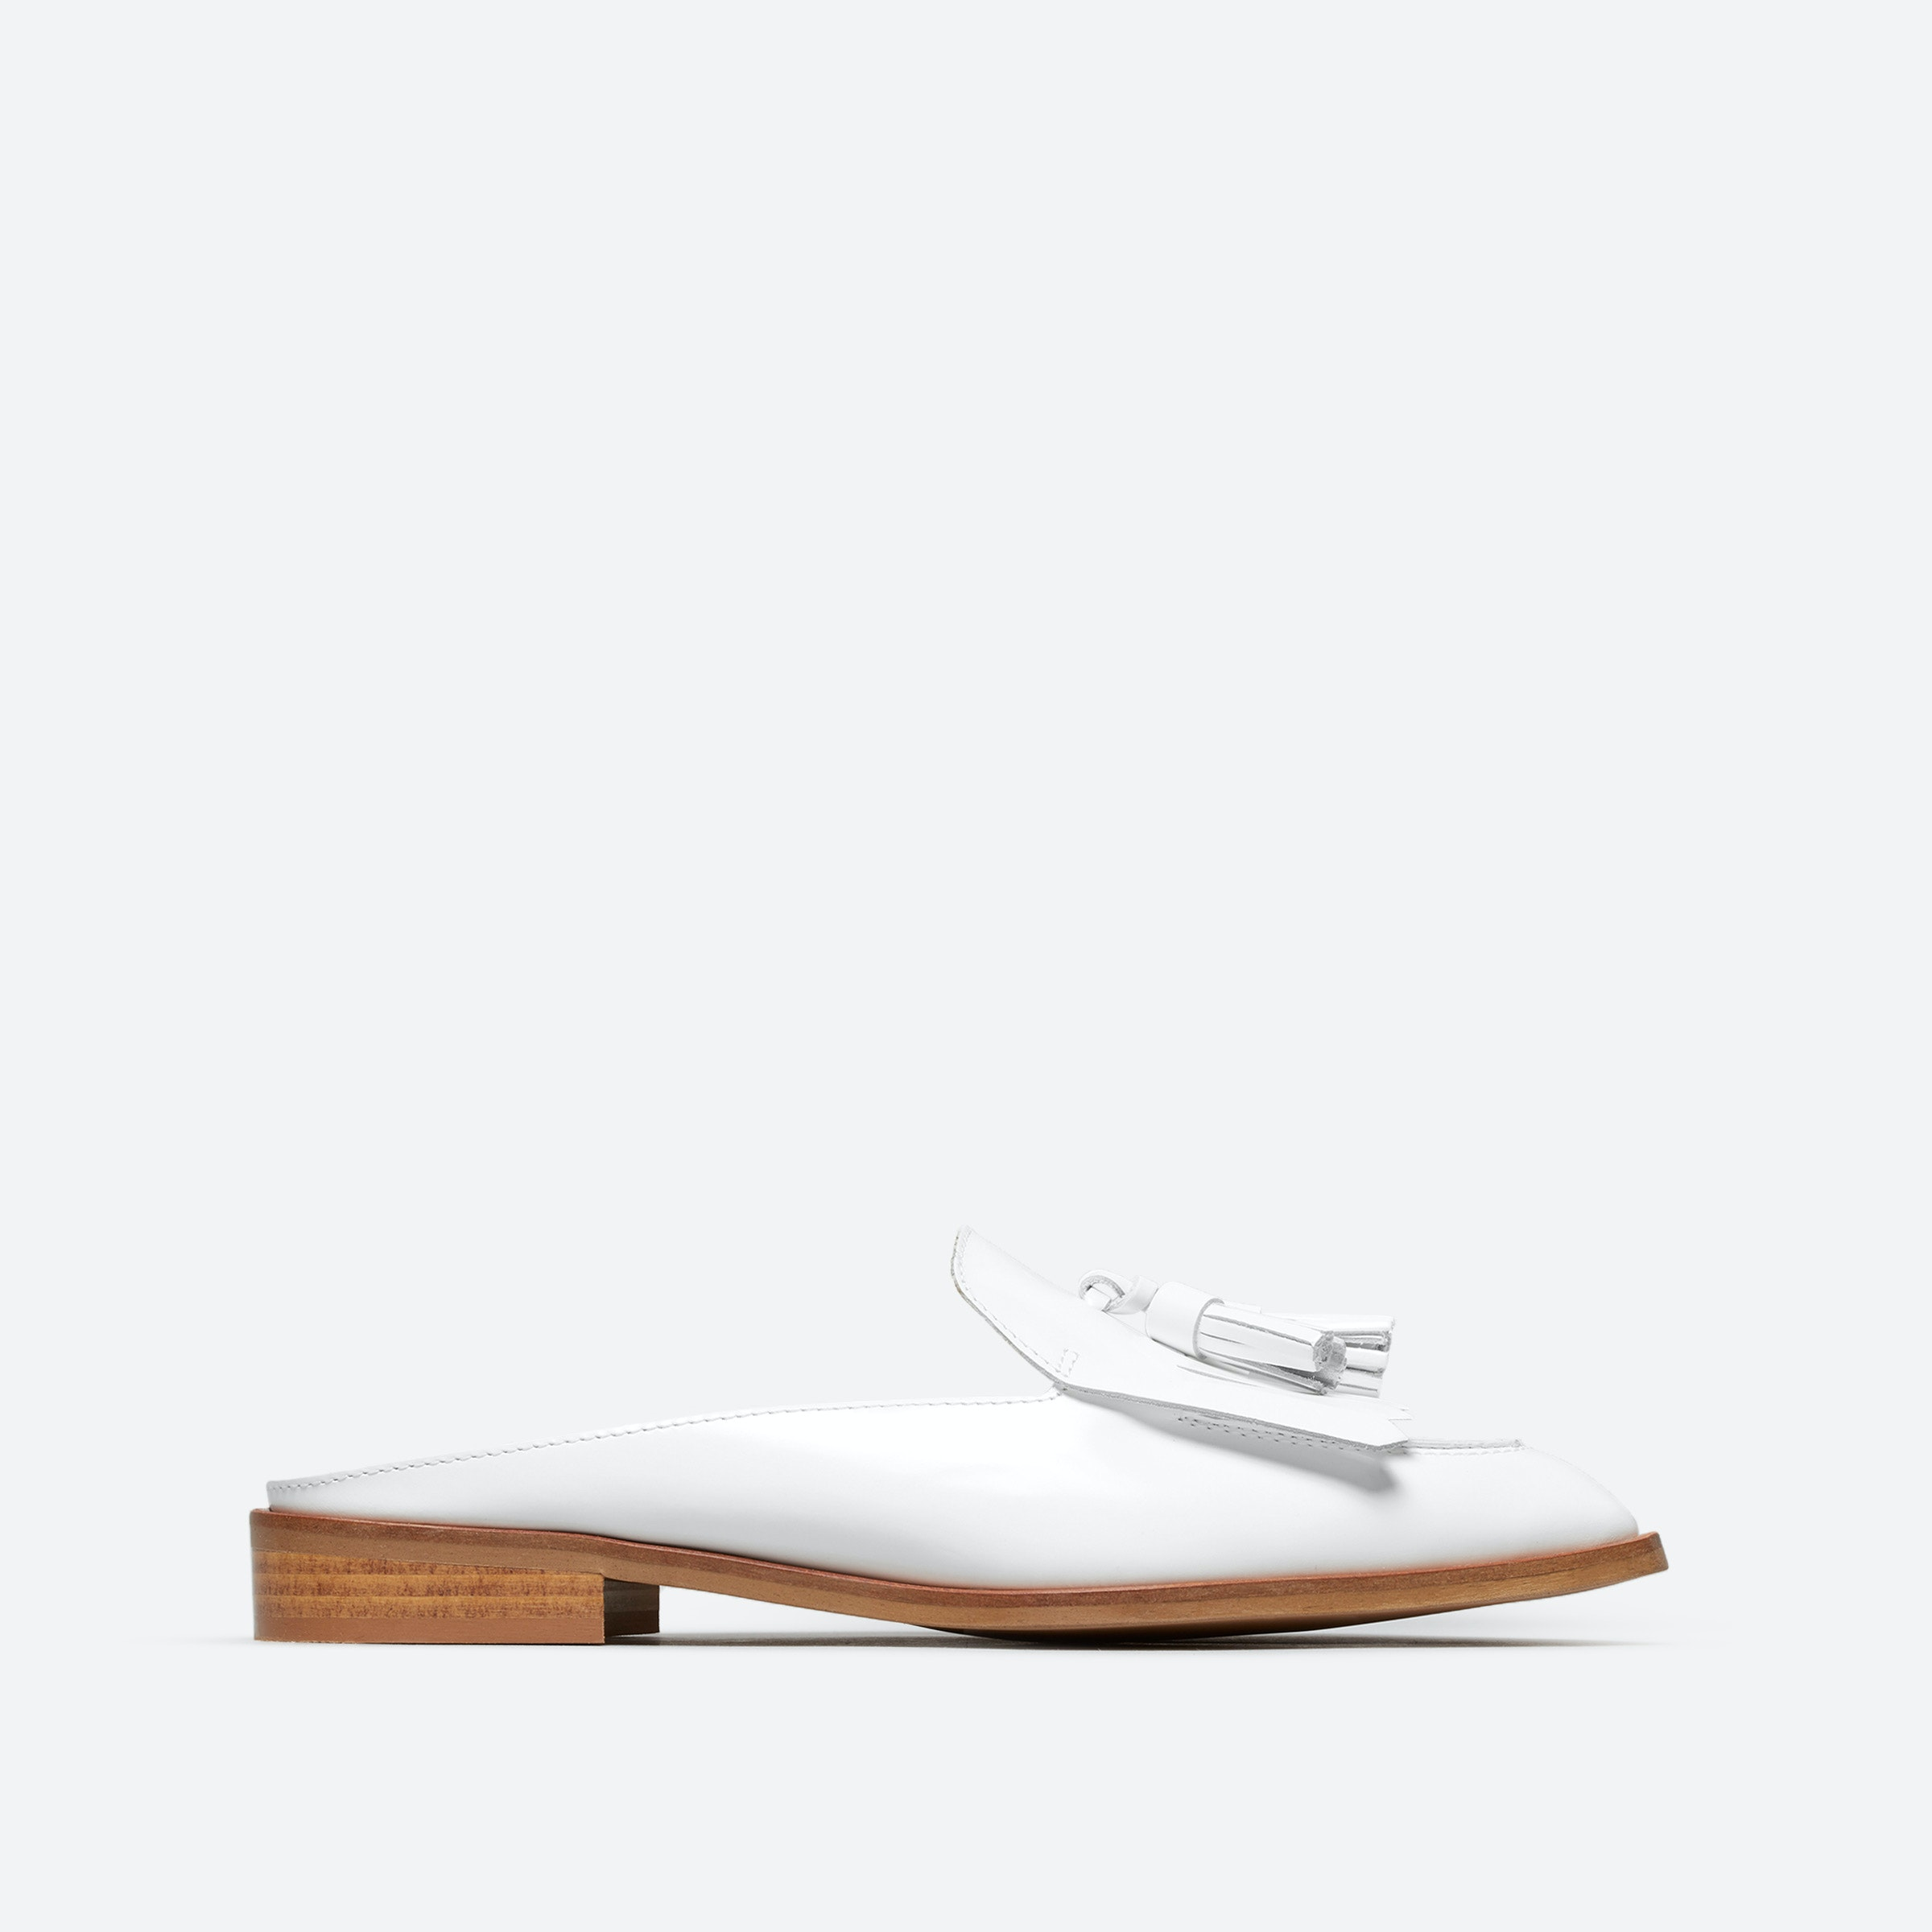 The Modern Tassel Loafer Mule by Everlane